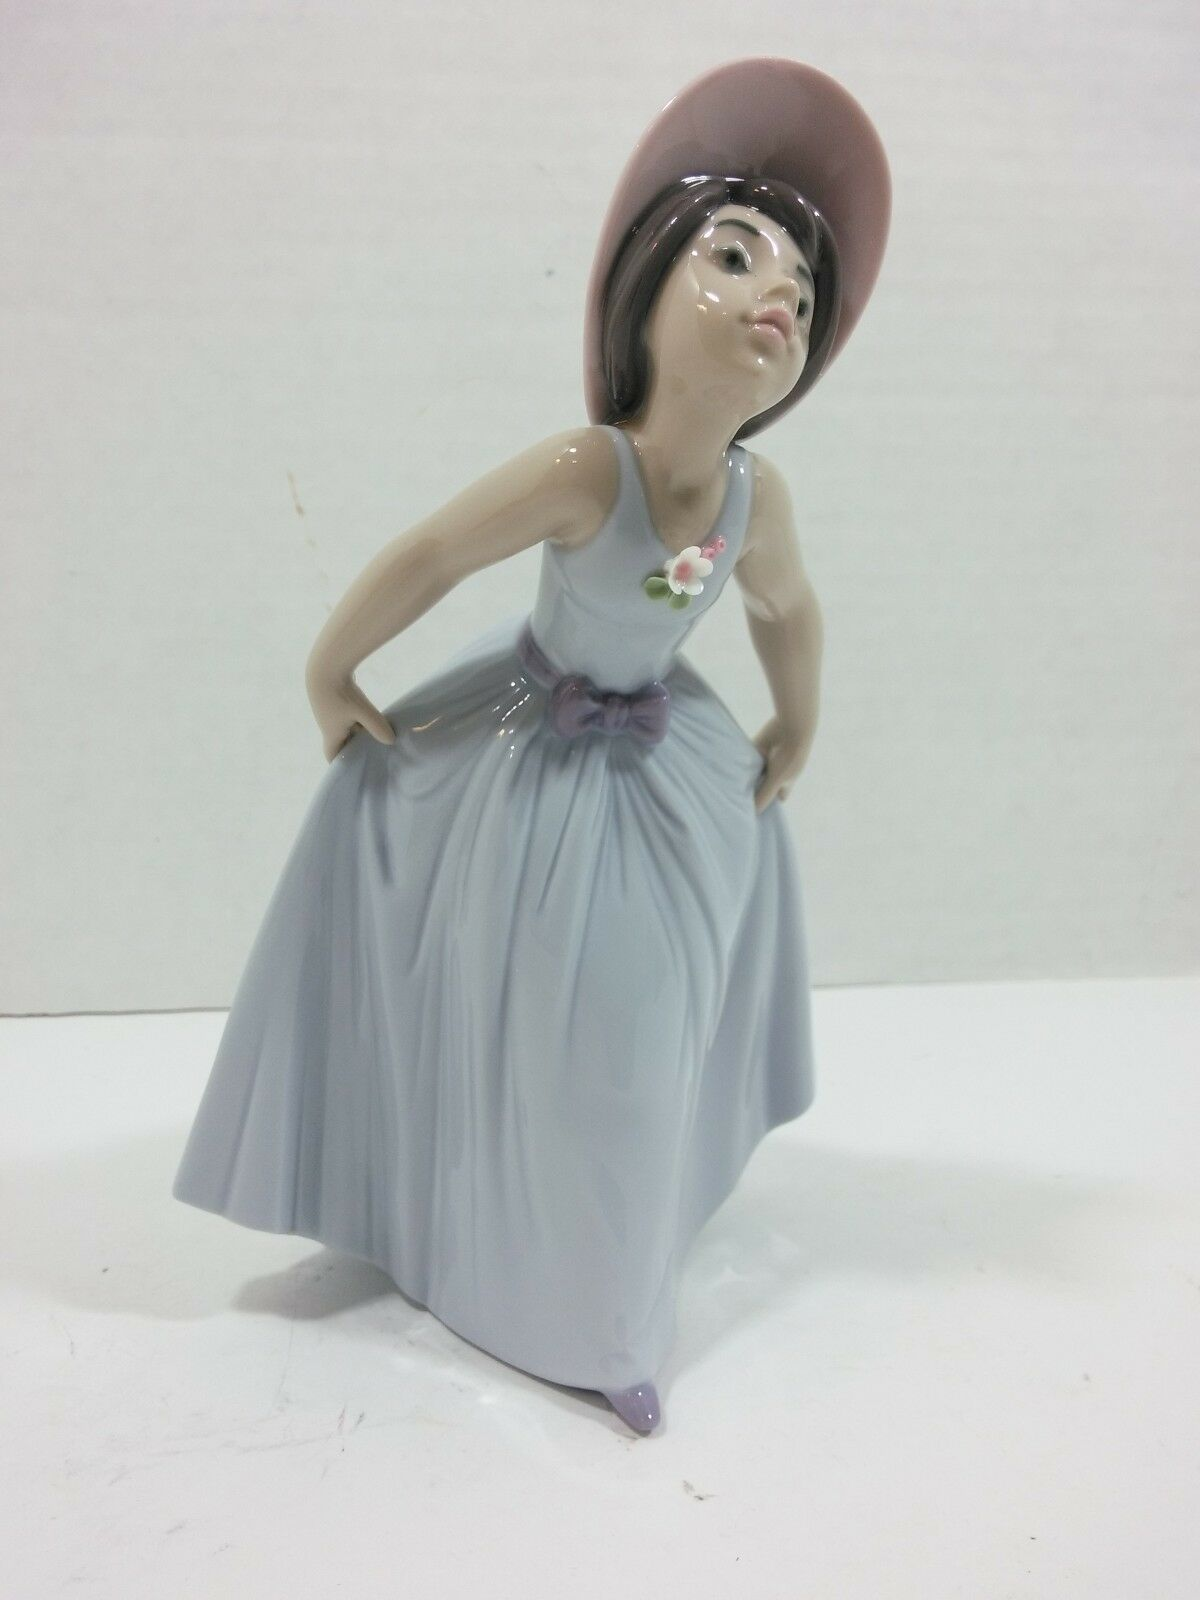 Primary image for Lladro Figurine 6274 Daisy, Mint, Retired, Girl w Hat & Blue Dress original box